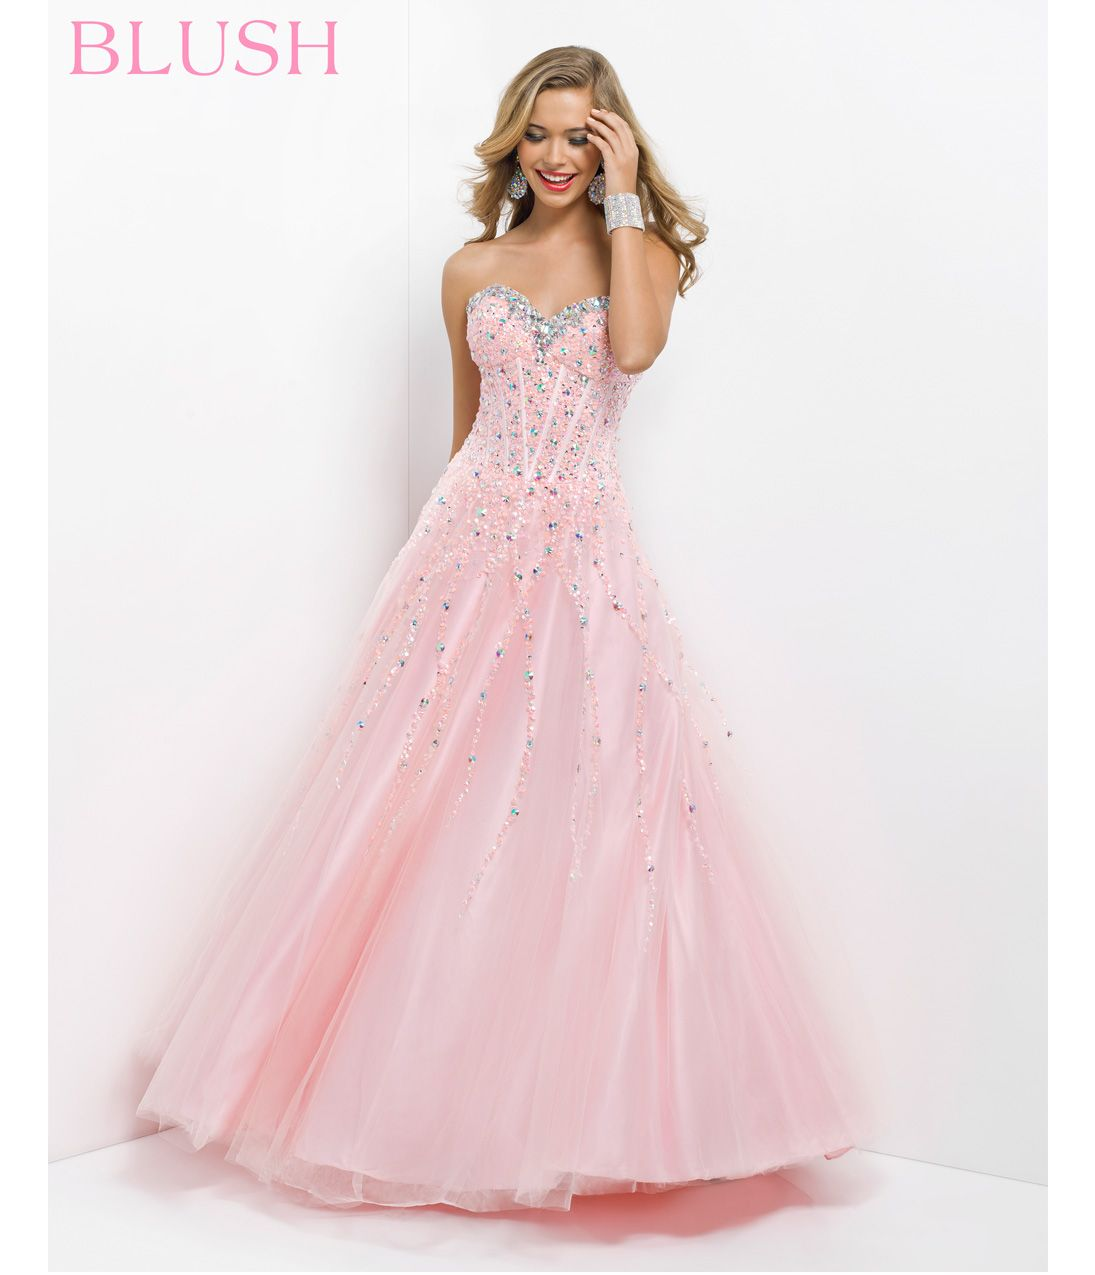 Pink by Blush 2014 Prom Dresses - Tea Rose Corset Sequin Prom Gown ...